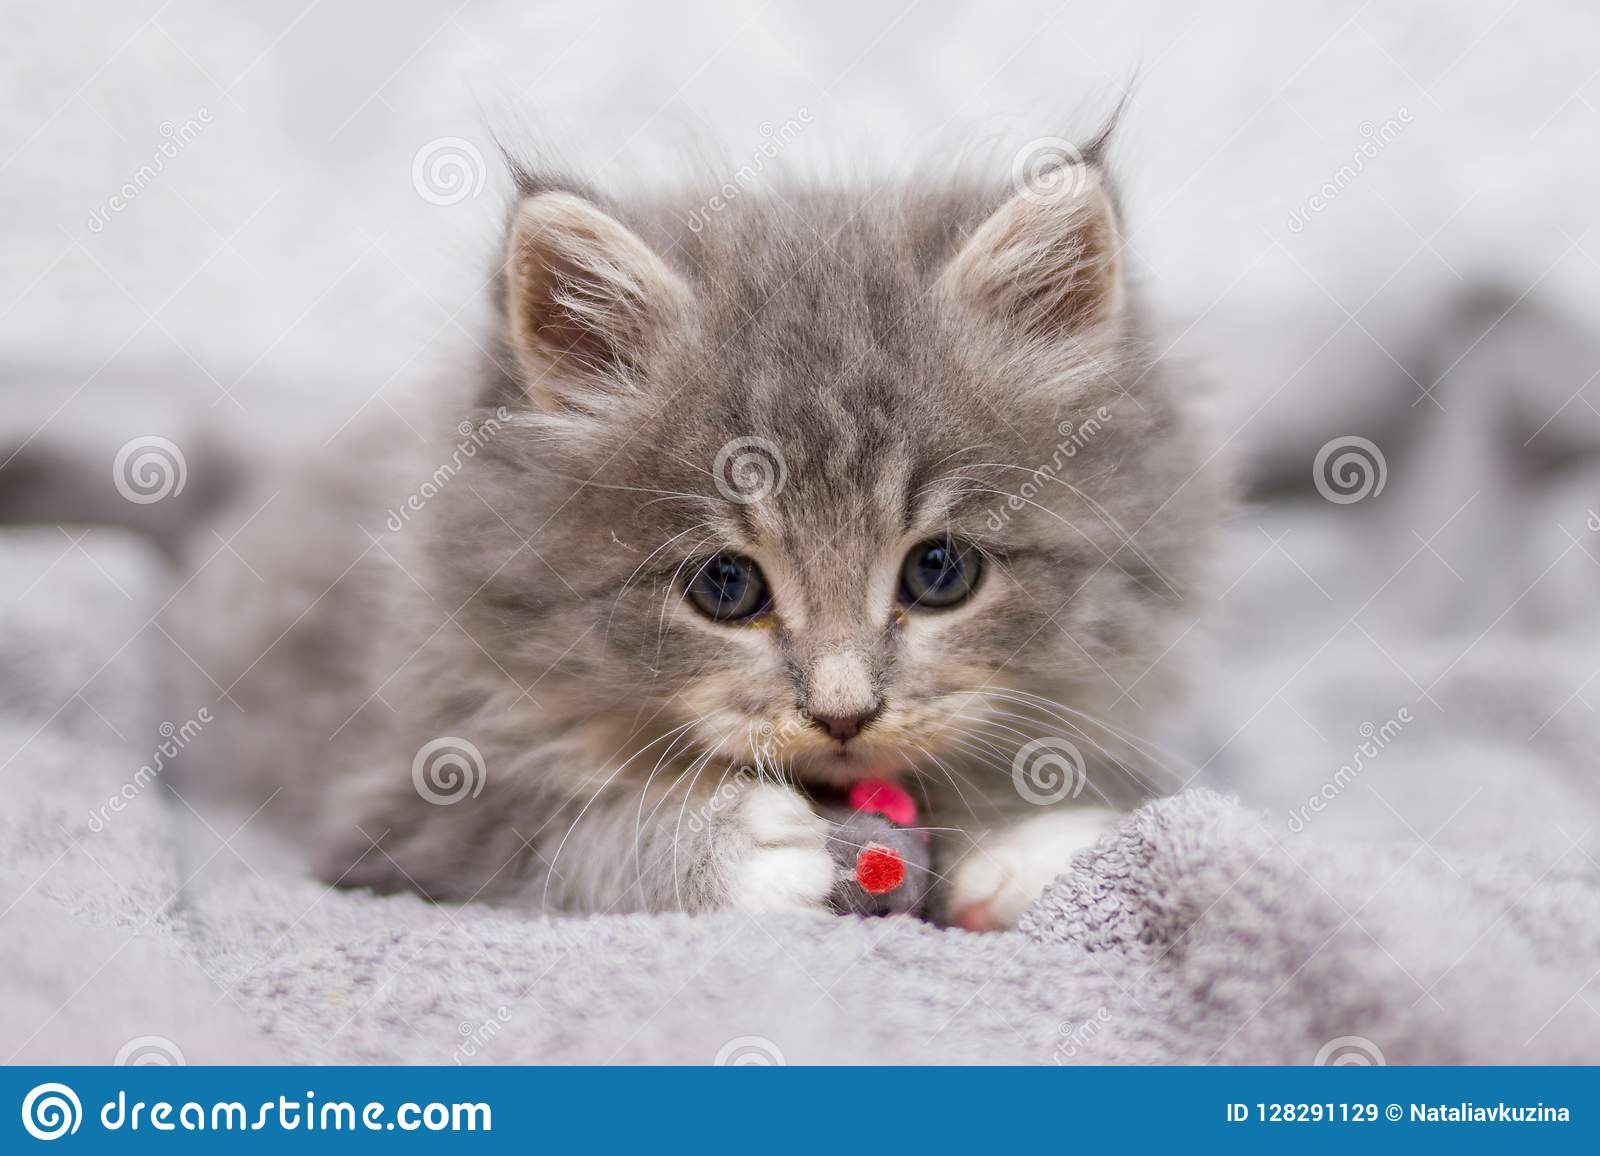 Little gray fluffy kitten maine coon looking at camera. Kid animals and cats concept